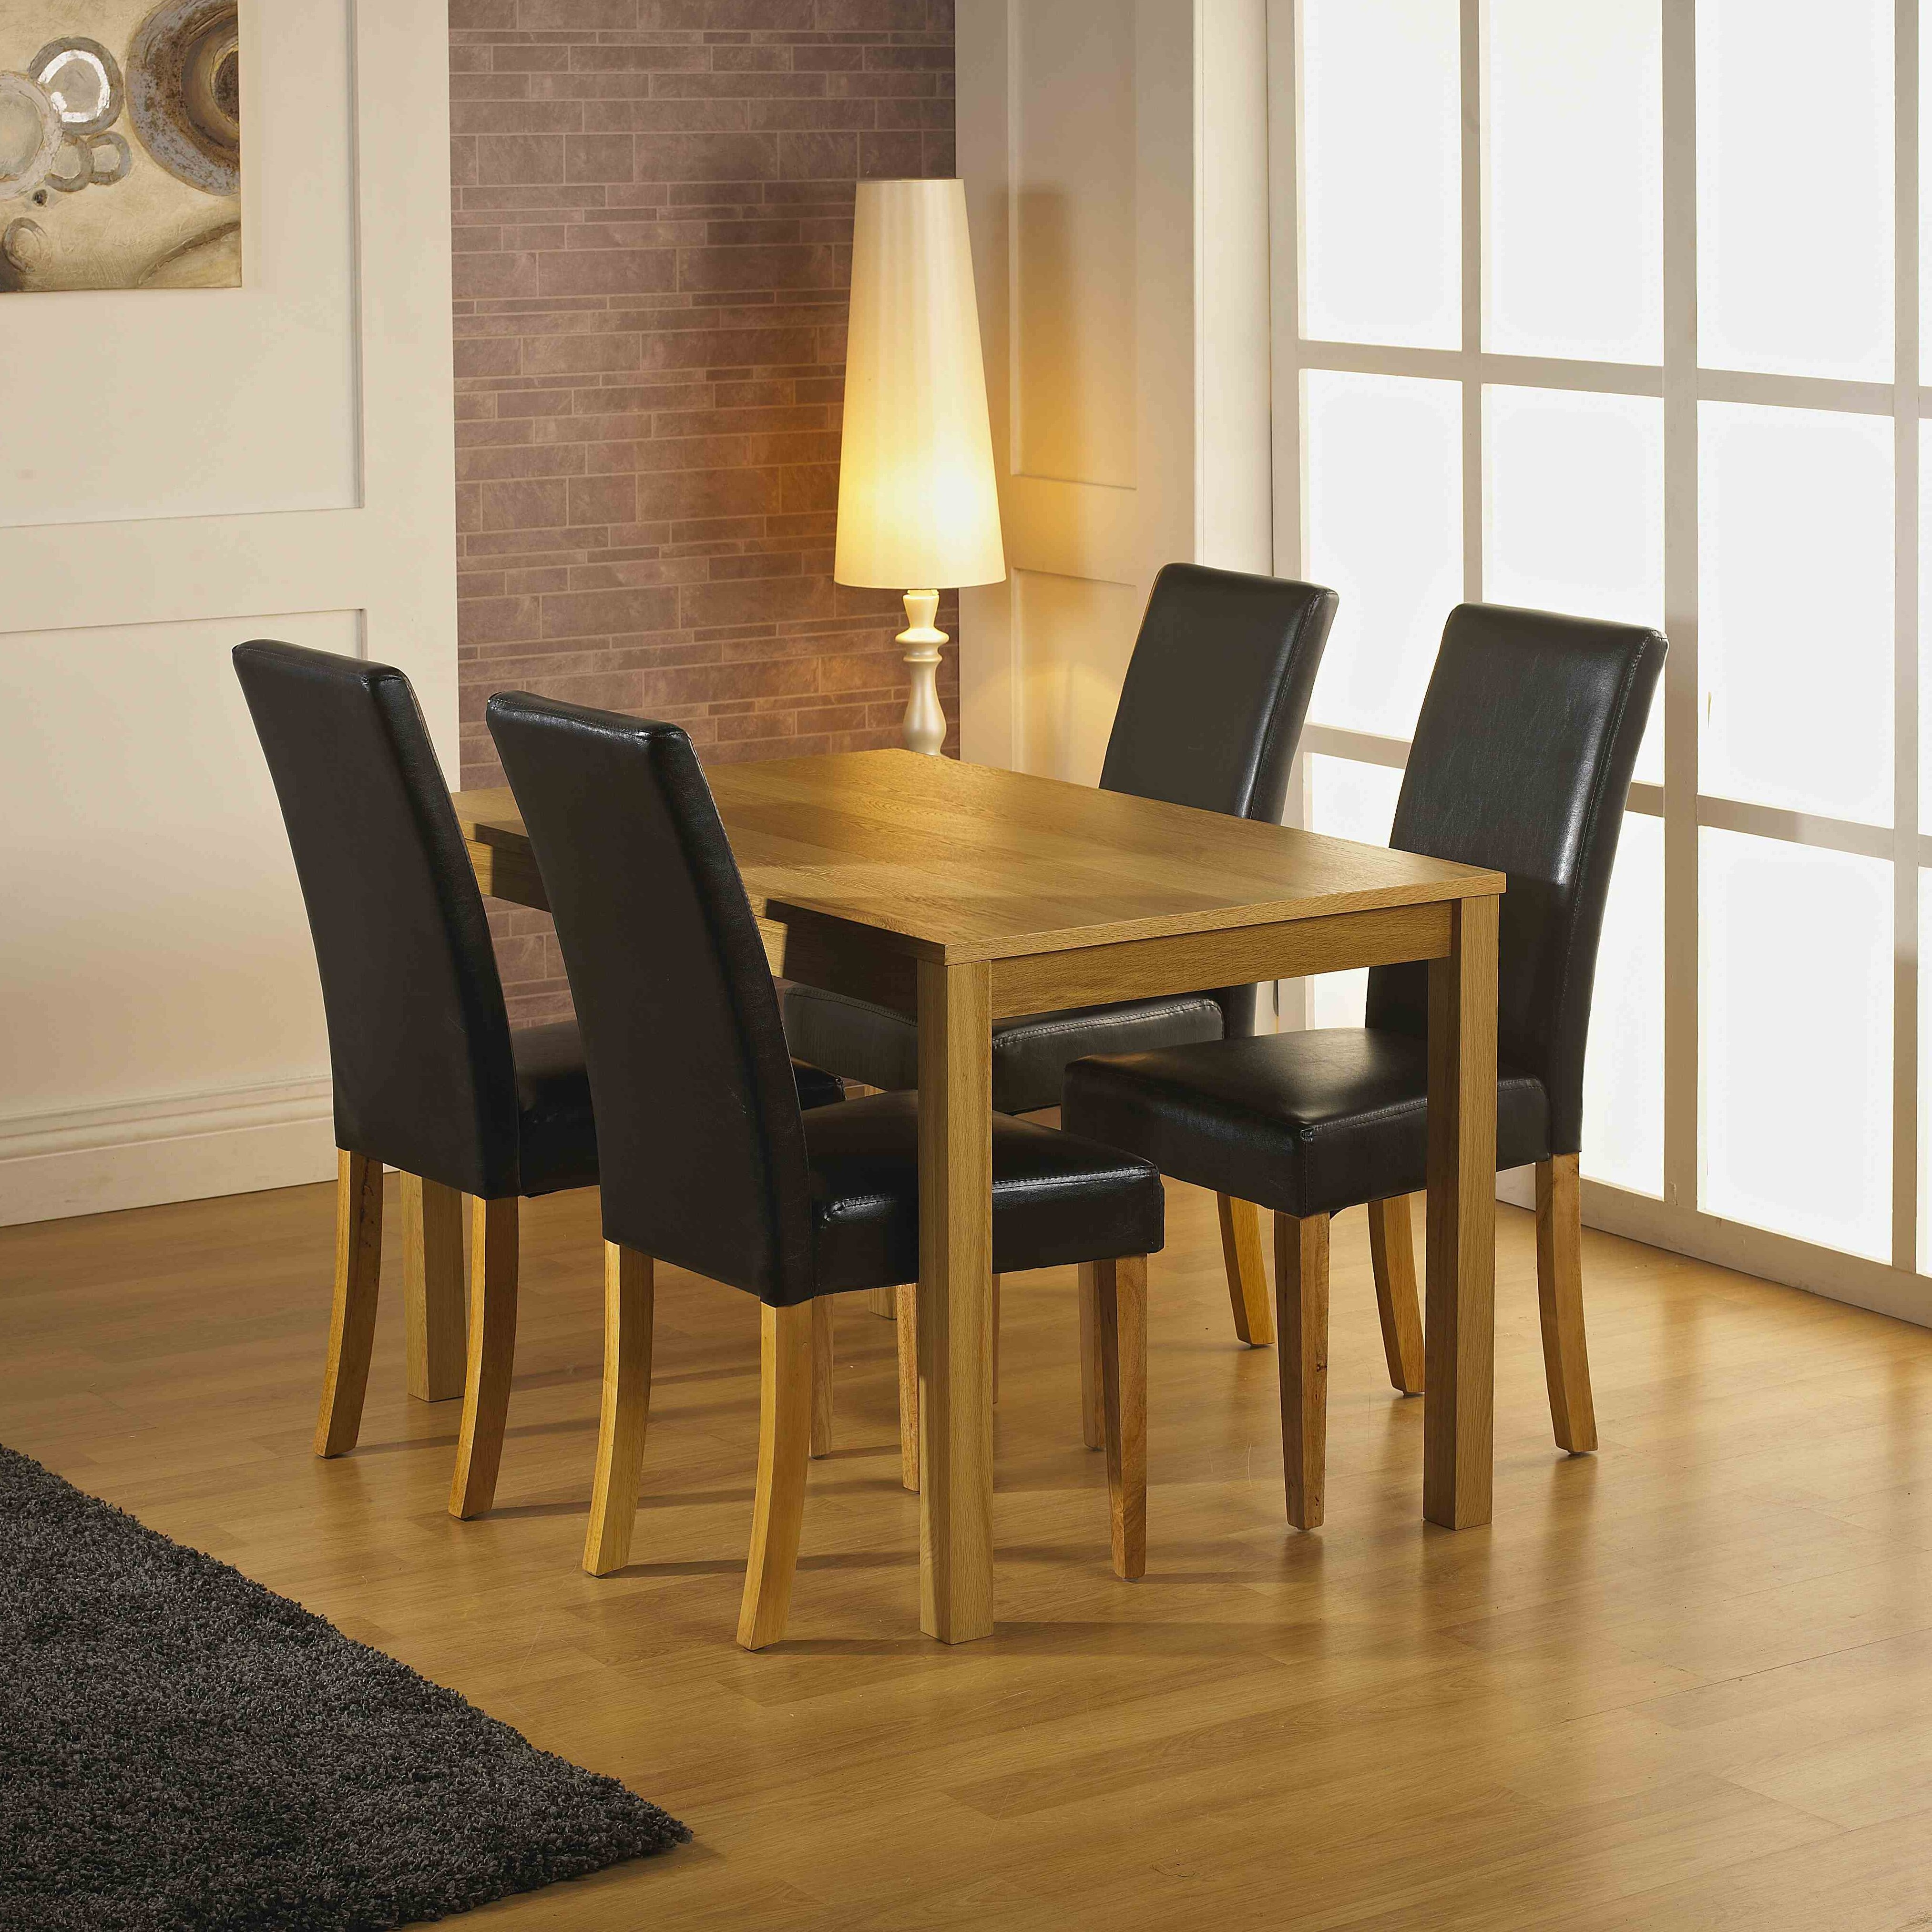 Home Haus Innisfail Dining Table And 4 Chairs Reviews Wayfair Uk